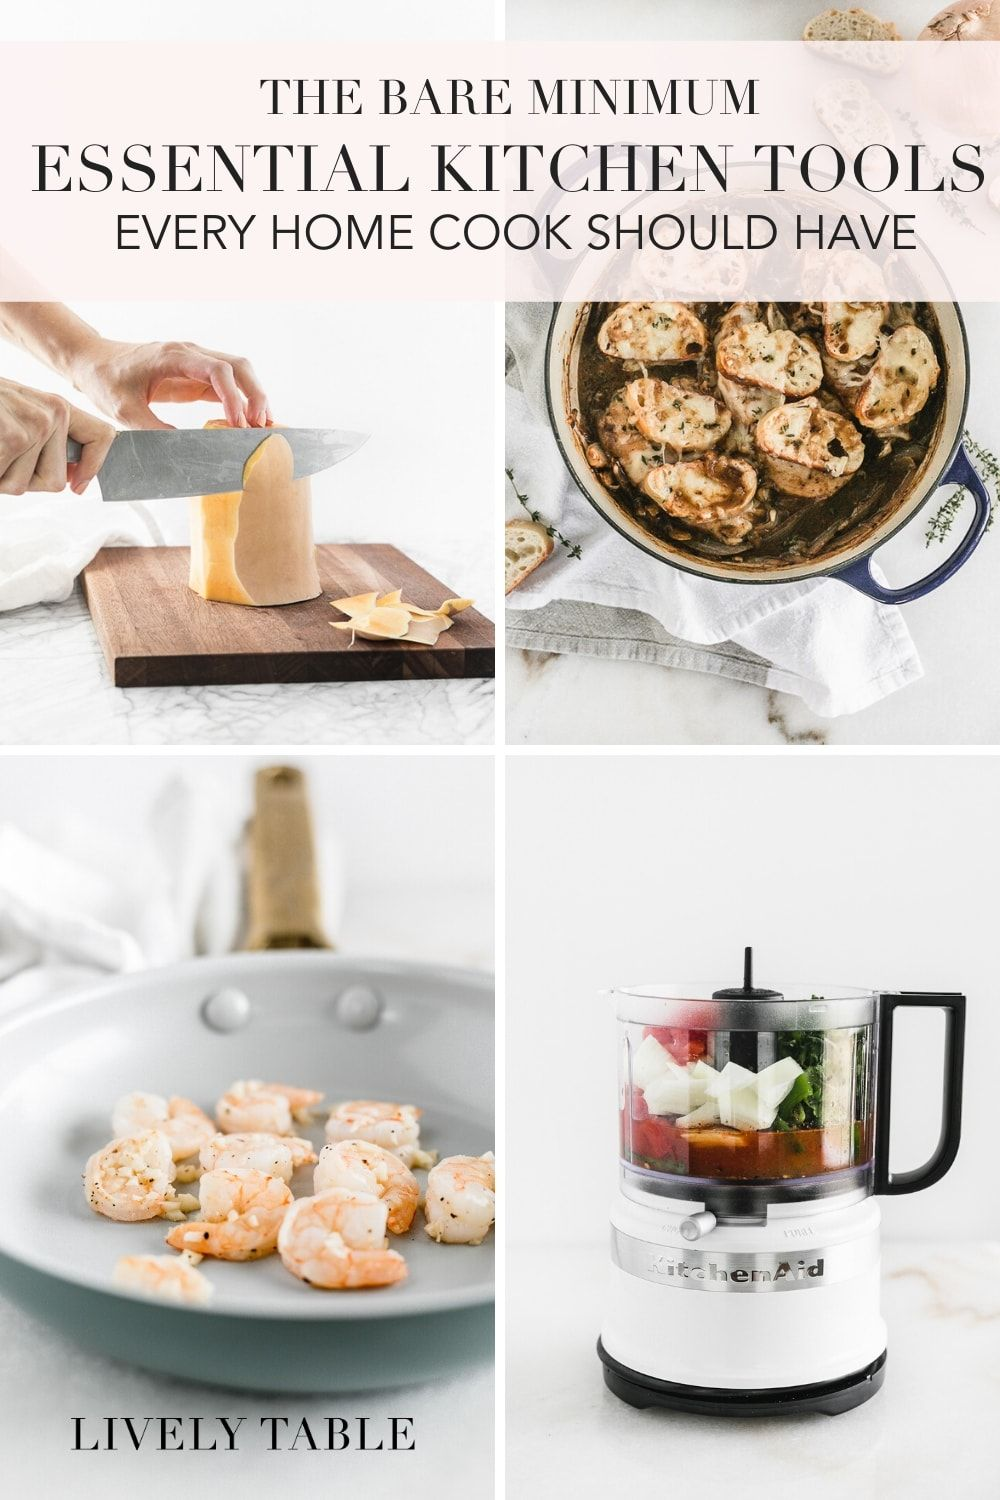 Essential Kitchen Tools Every Home Cook Should Own In 2020 Essential Kitchen Tools Cooking Non Toxic Cookware